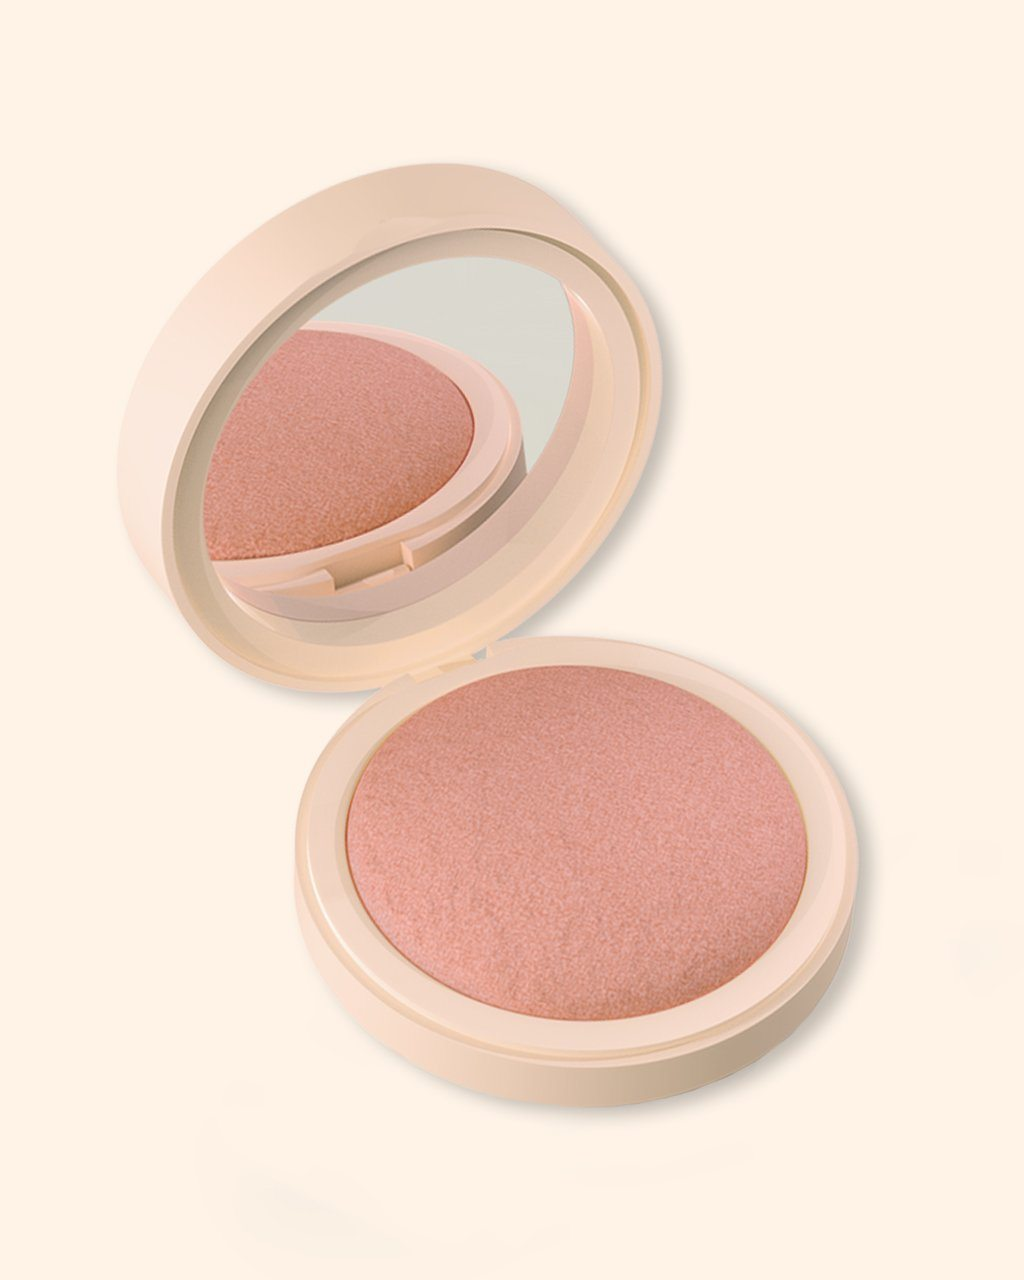 Heaven's Glow Radiant Veil Blush - Magic Hour